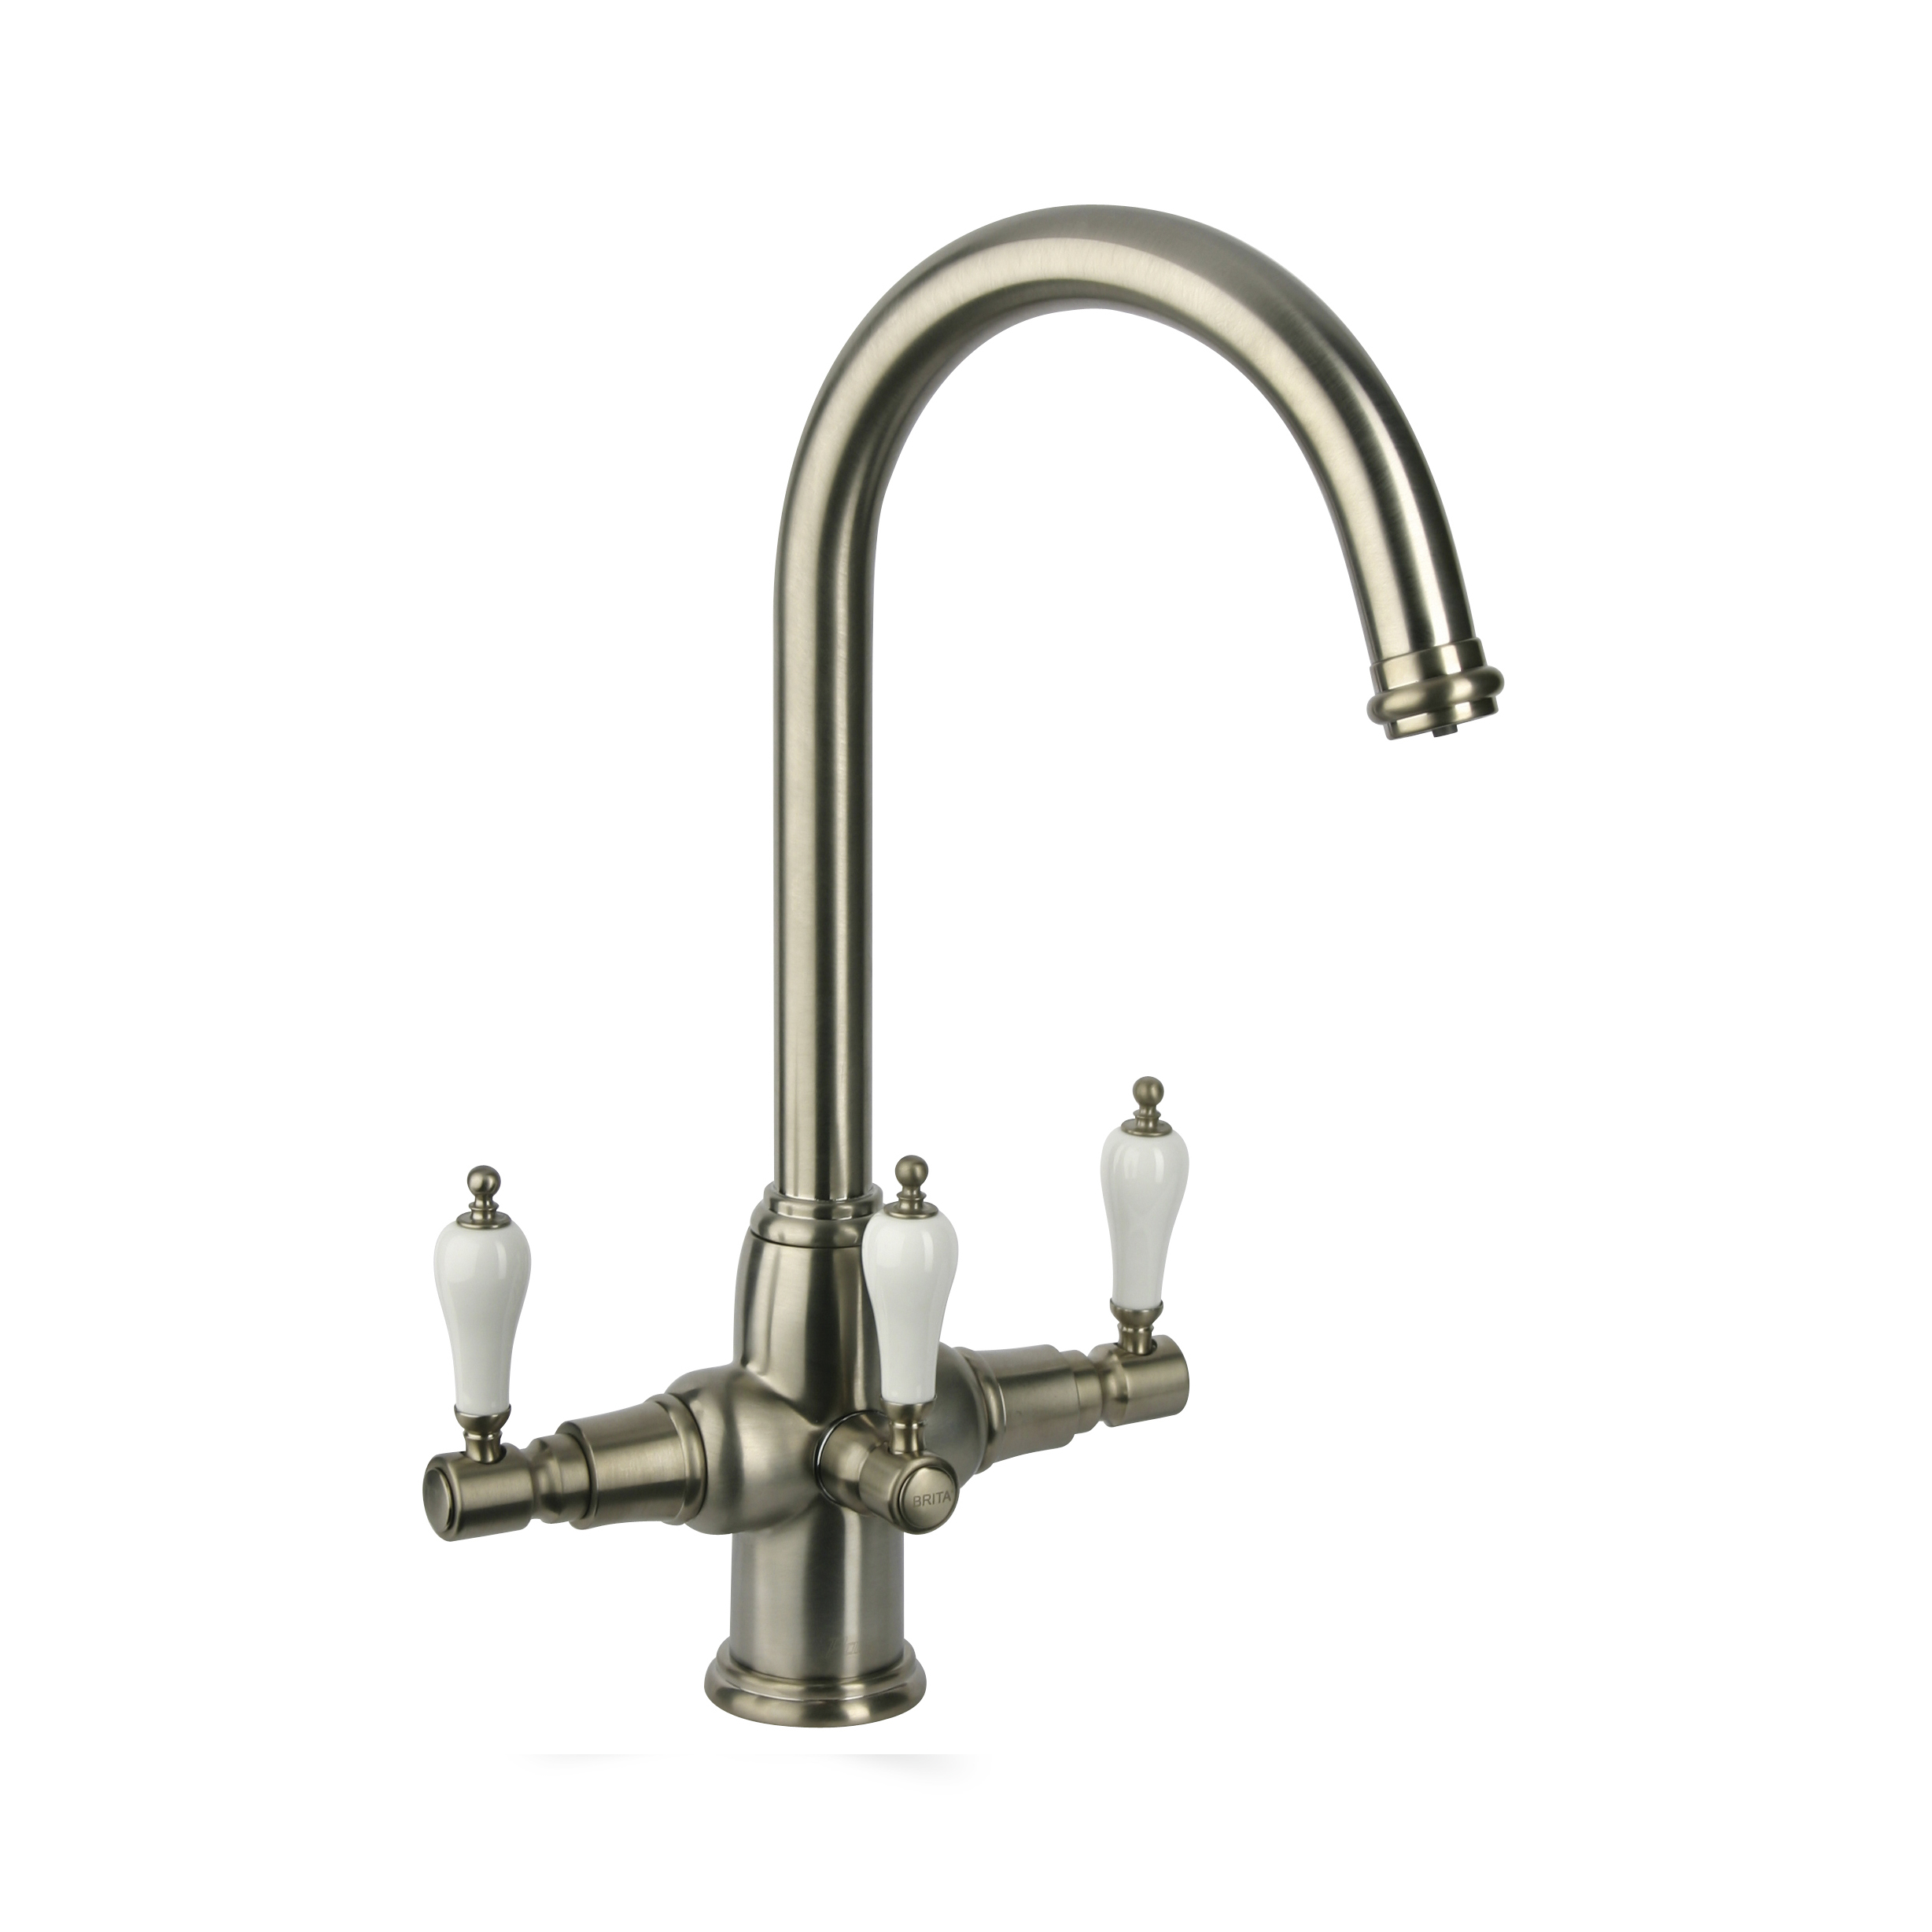 systems system tap faucet on small appliances best filters water faucets sink reviews brita filter